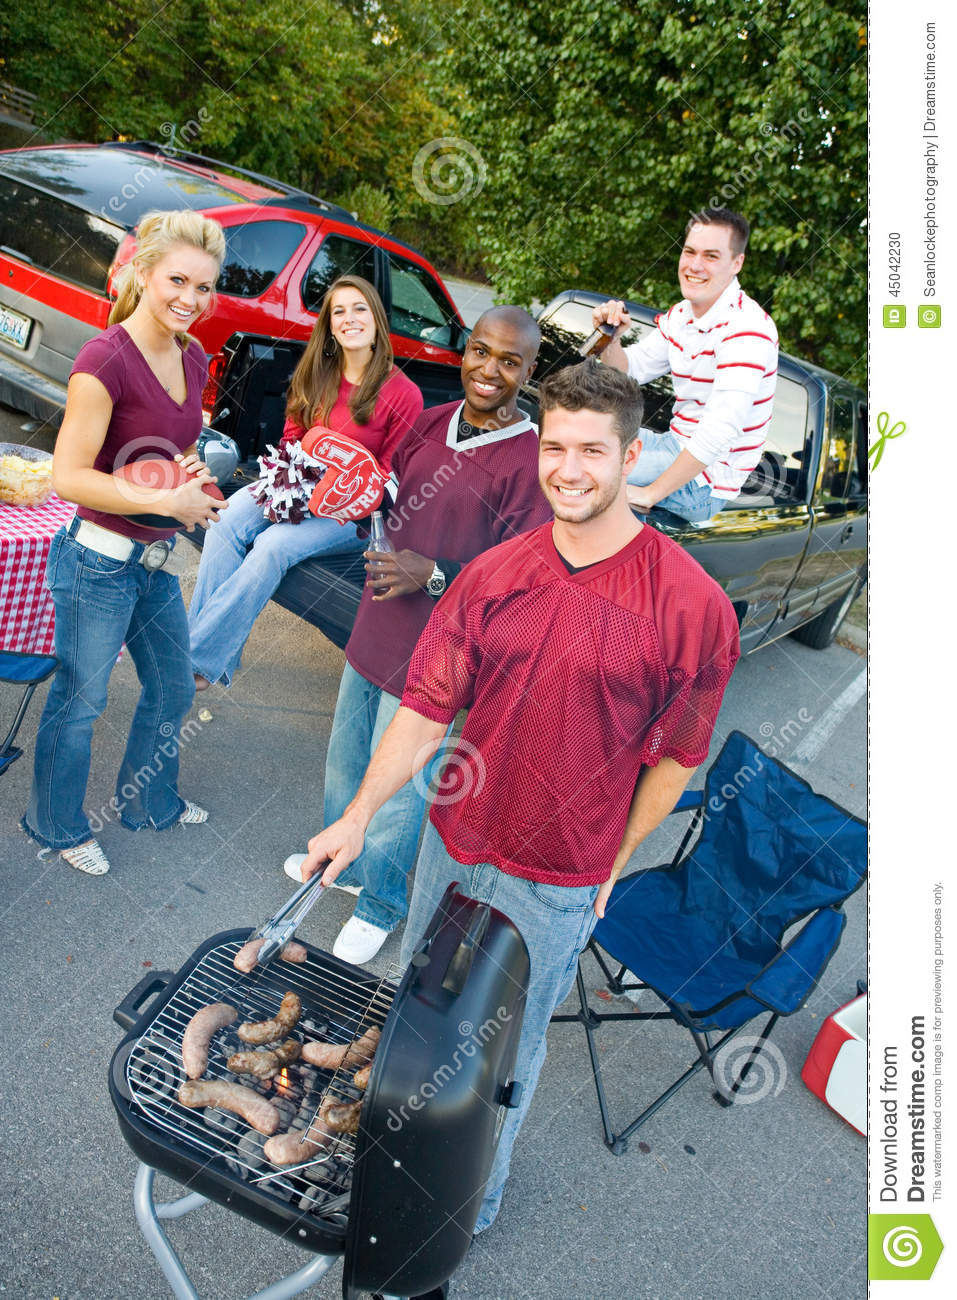 Tailgating: Smiling Group Waits For Tailgate Food To Cook